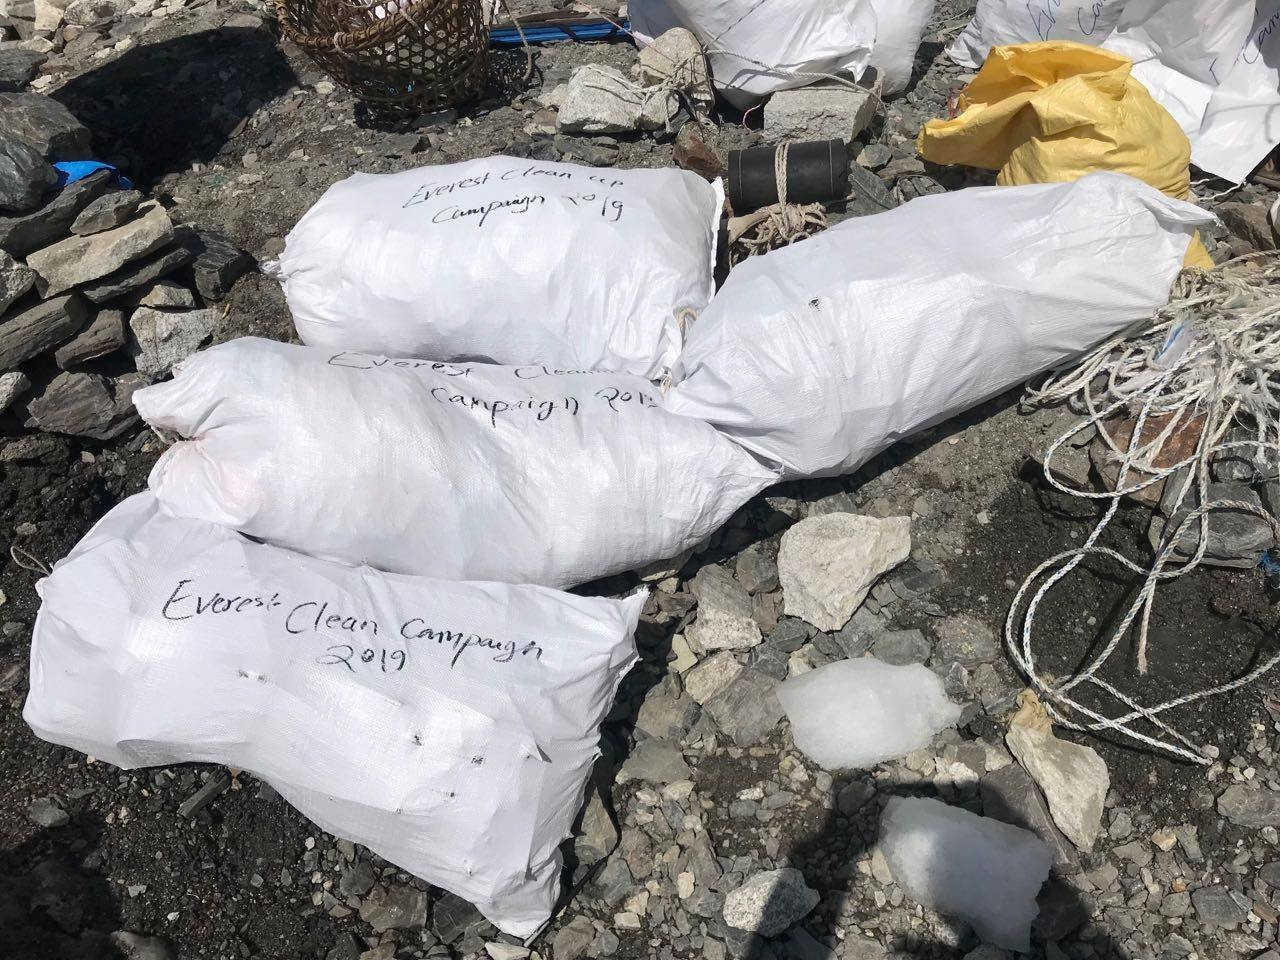 Melting snow revealed thousands of kilogrammes of trash on the world's highest peak.